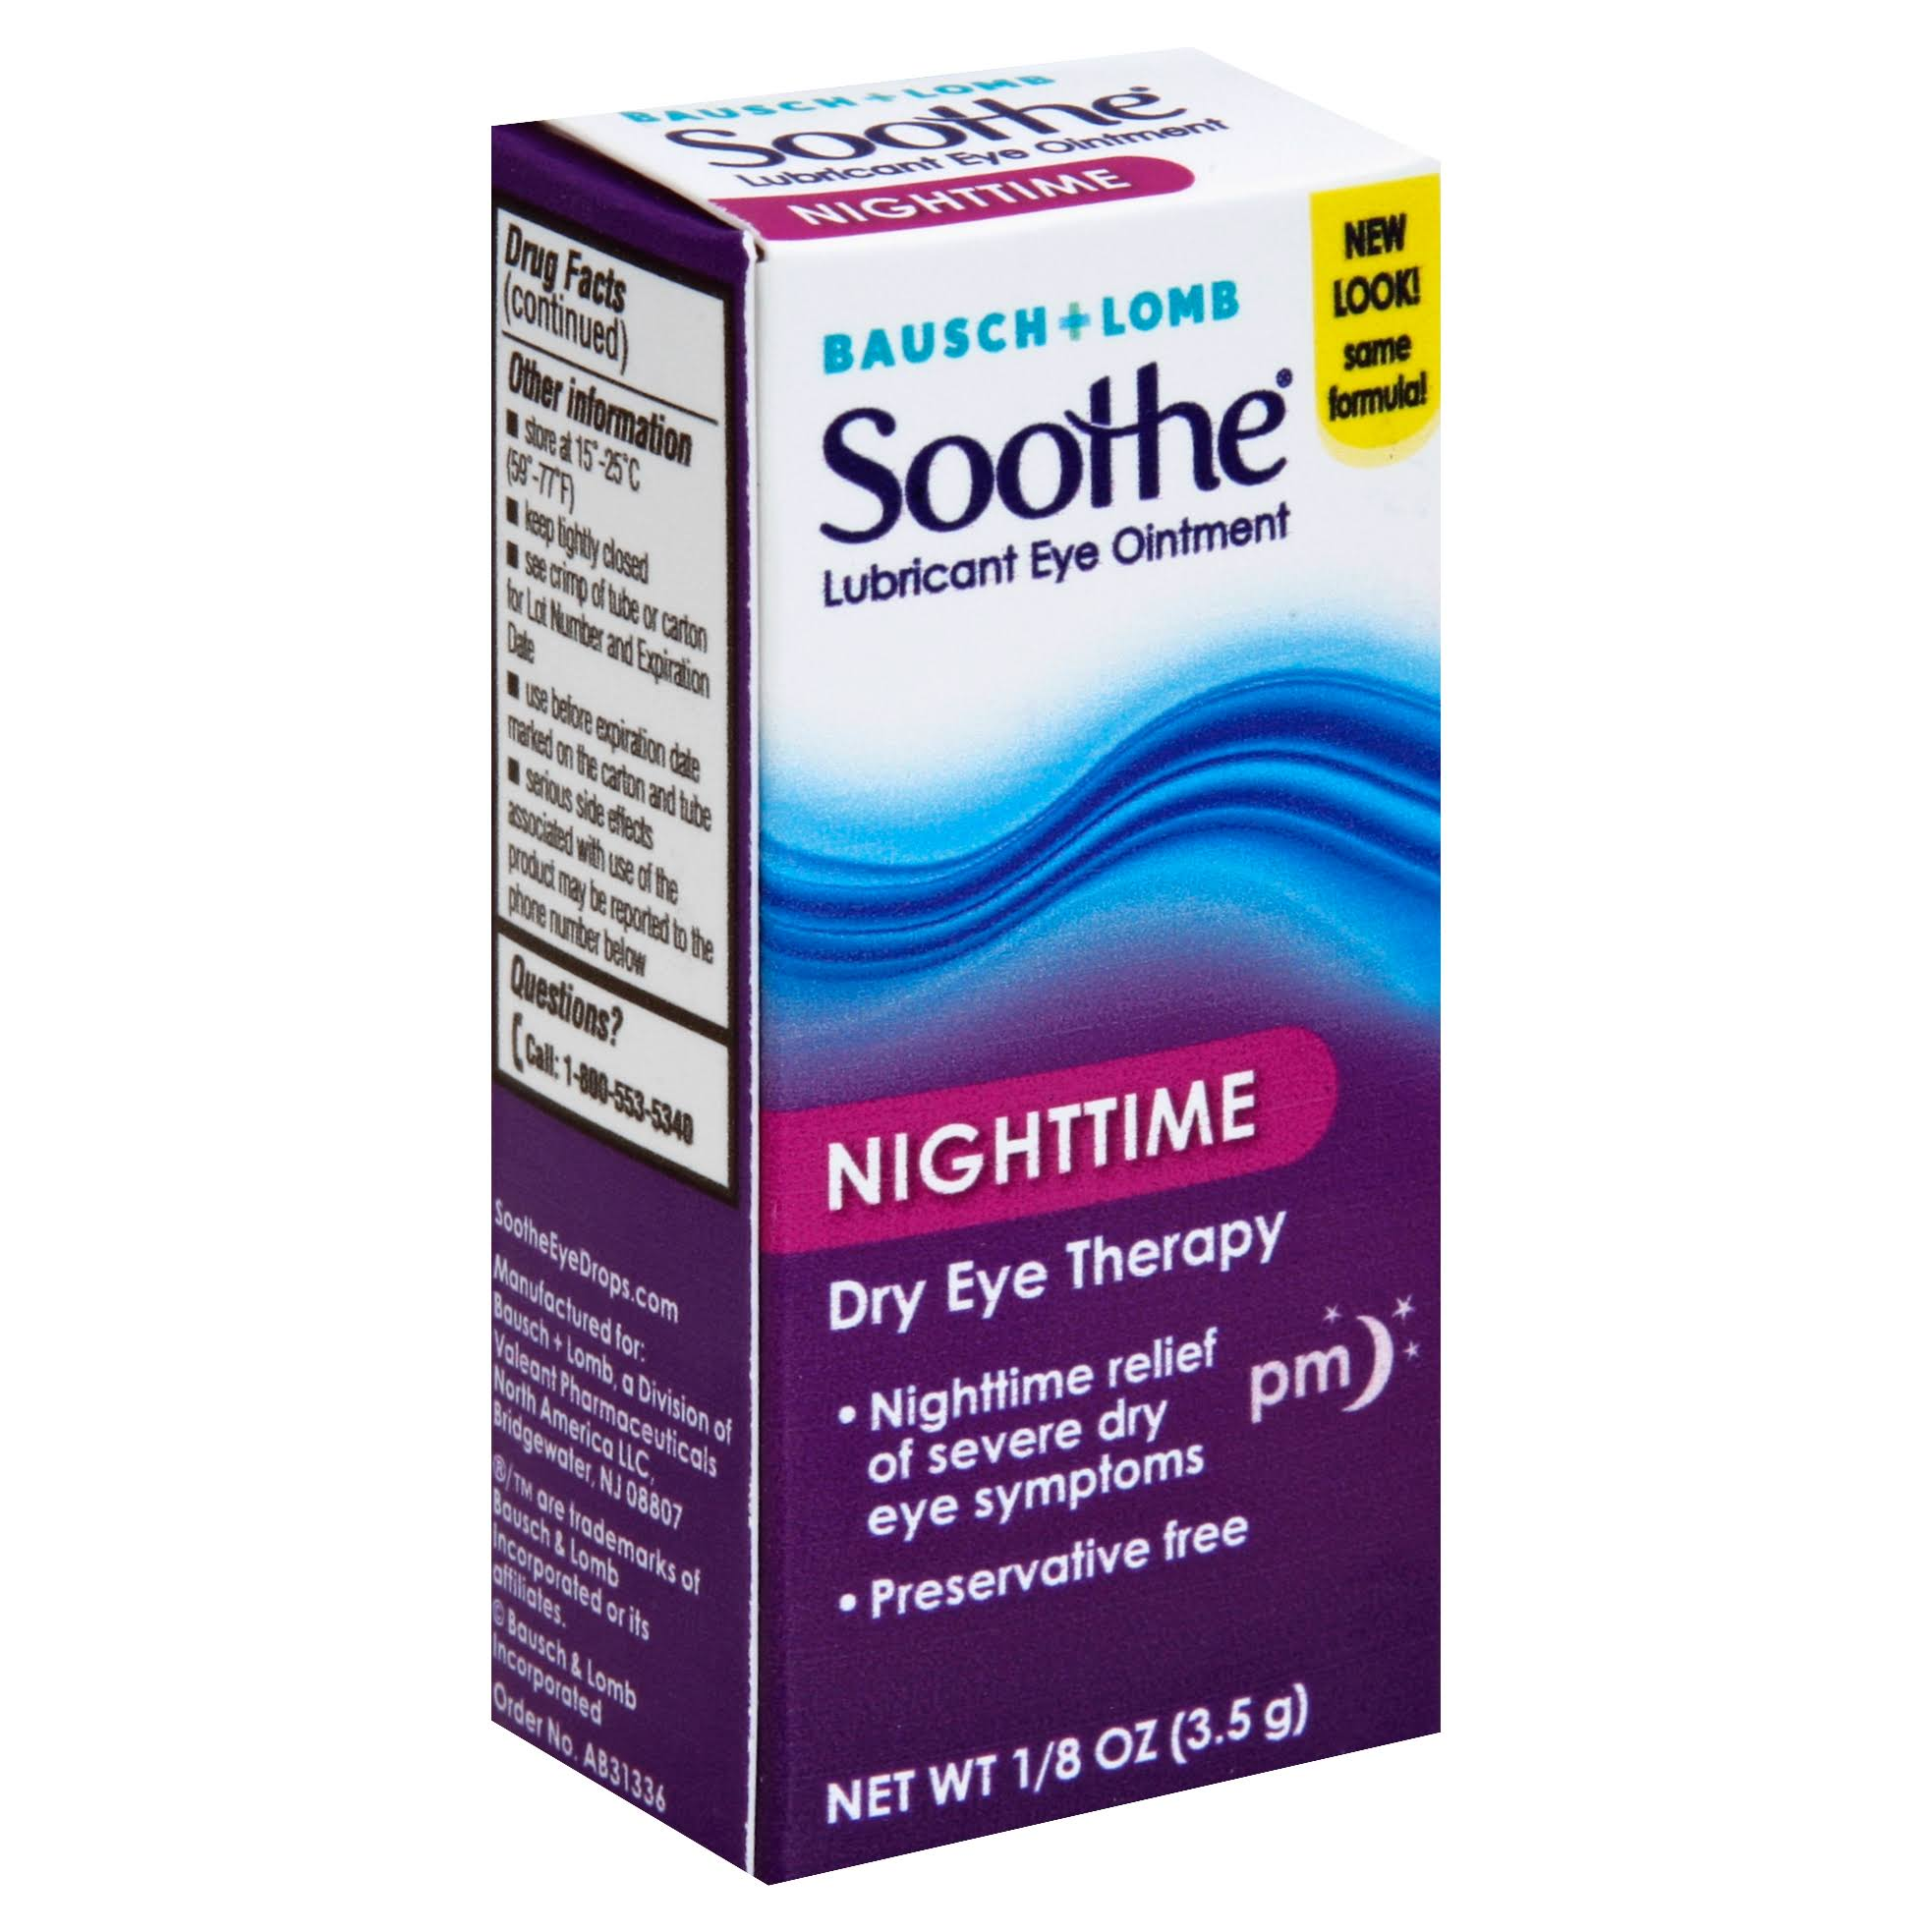 Bausch + Lomb Soothe Lubricant Eye Ointment - Night Time, 1/8oz